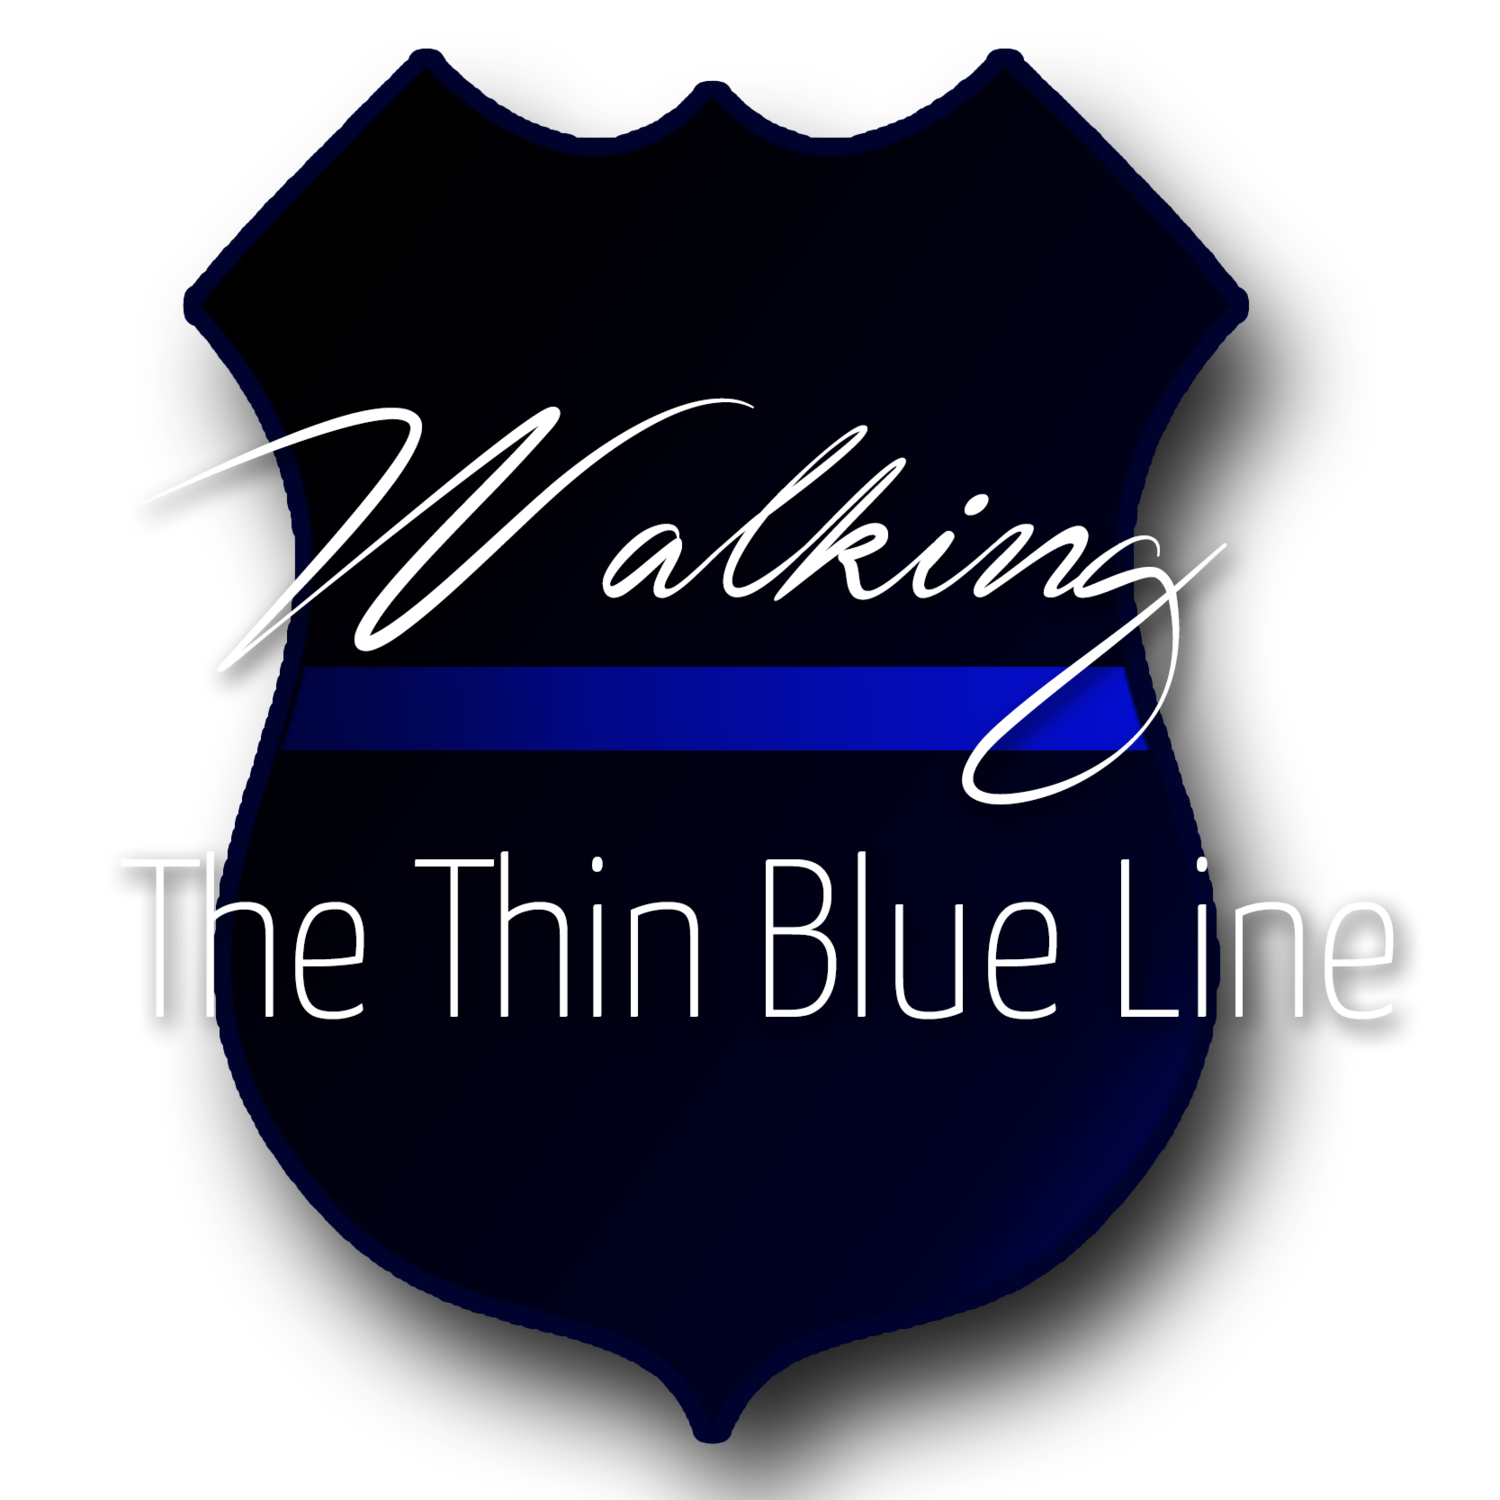 Walking the Thin Blue Line